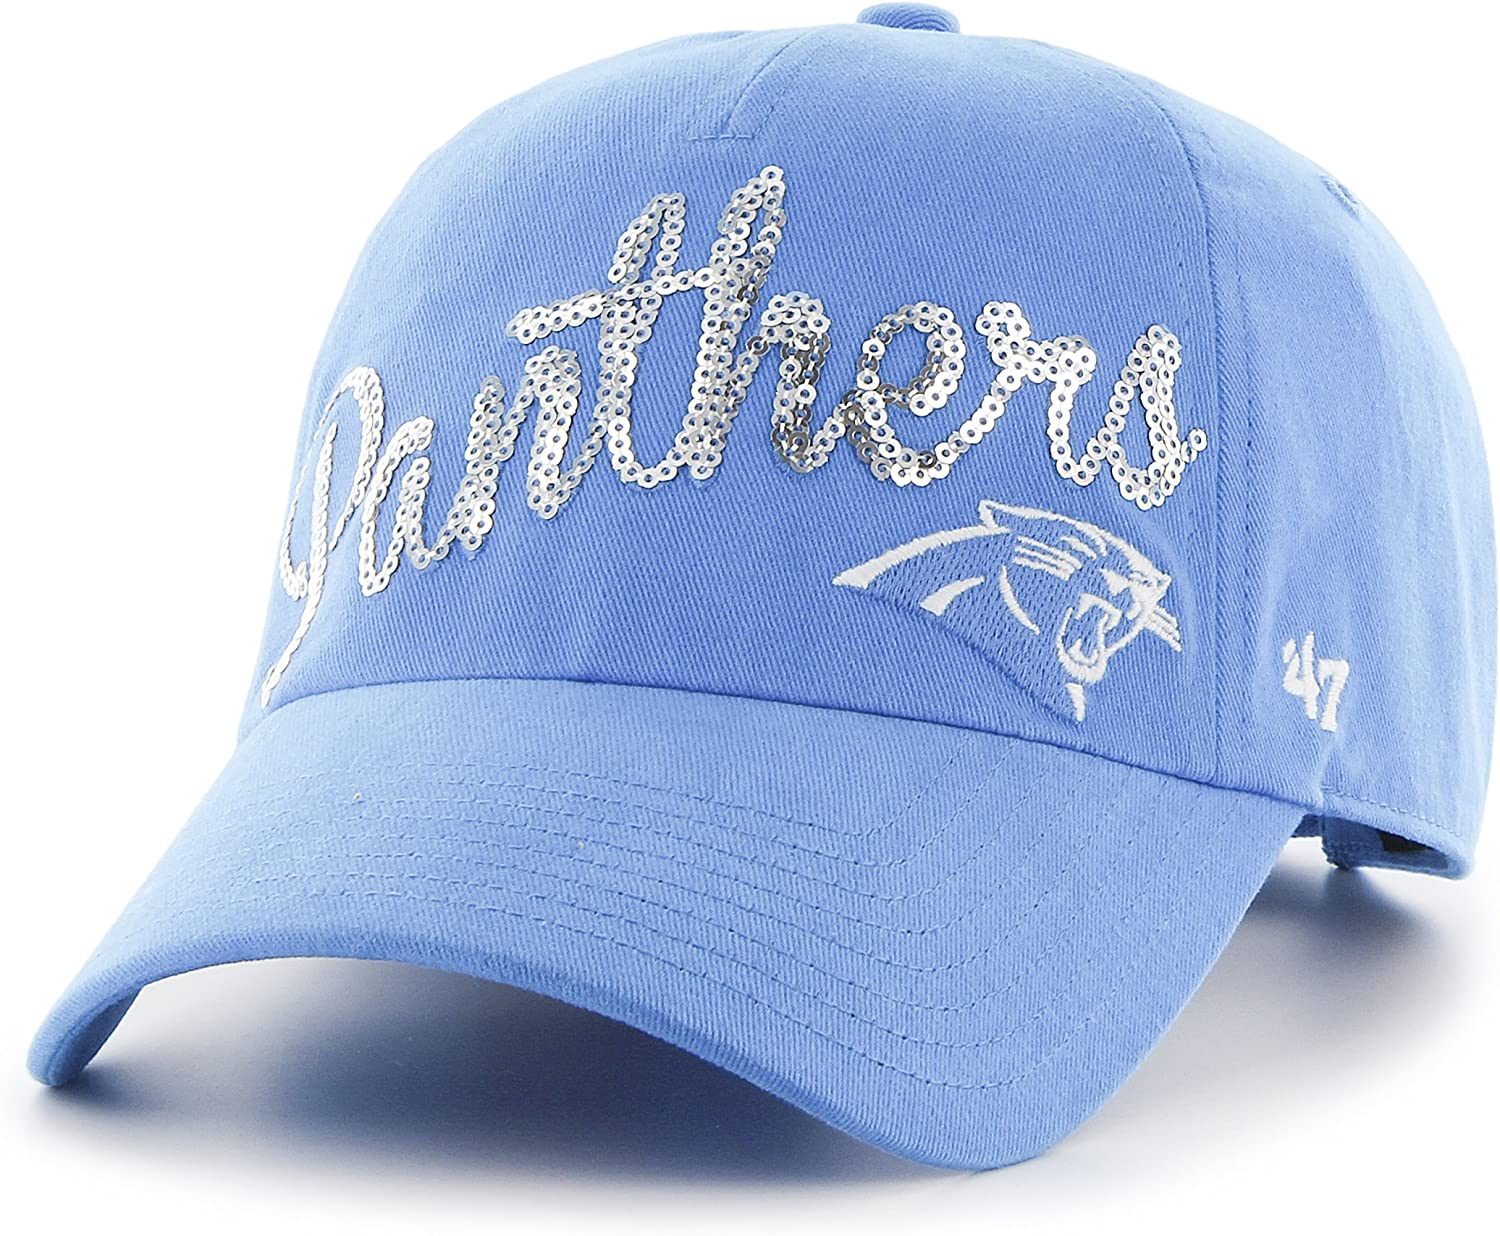 NFL Womens Sparkle Two Tone Clean Up Adjustable Hat